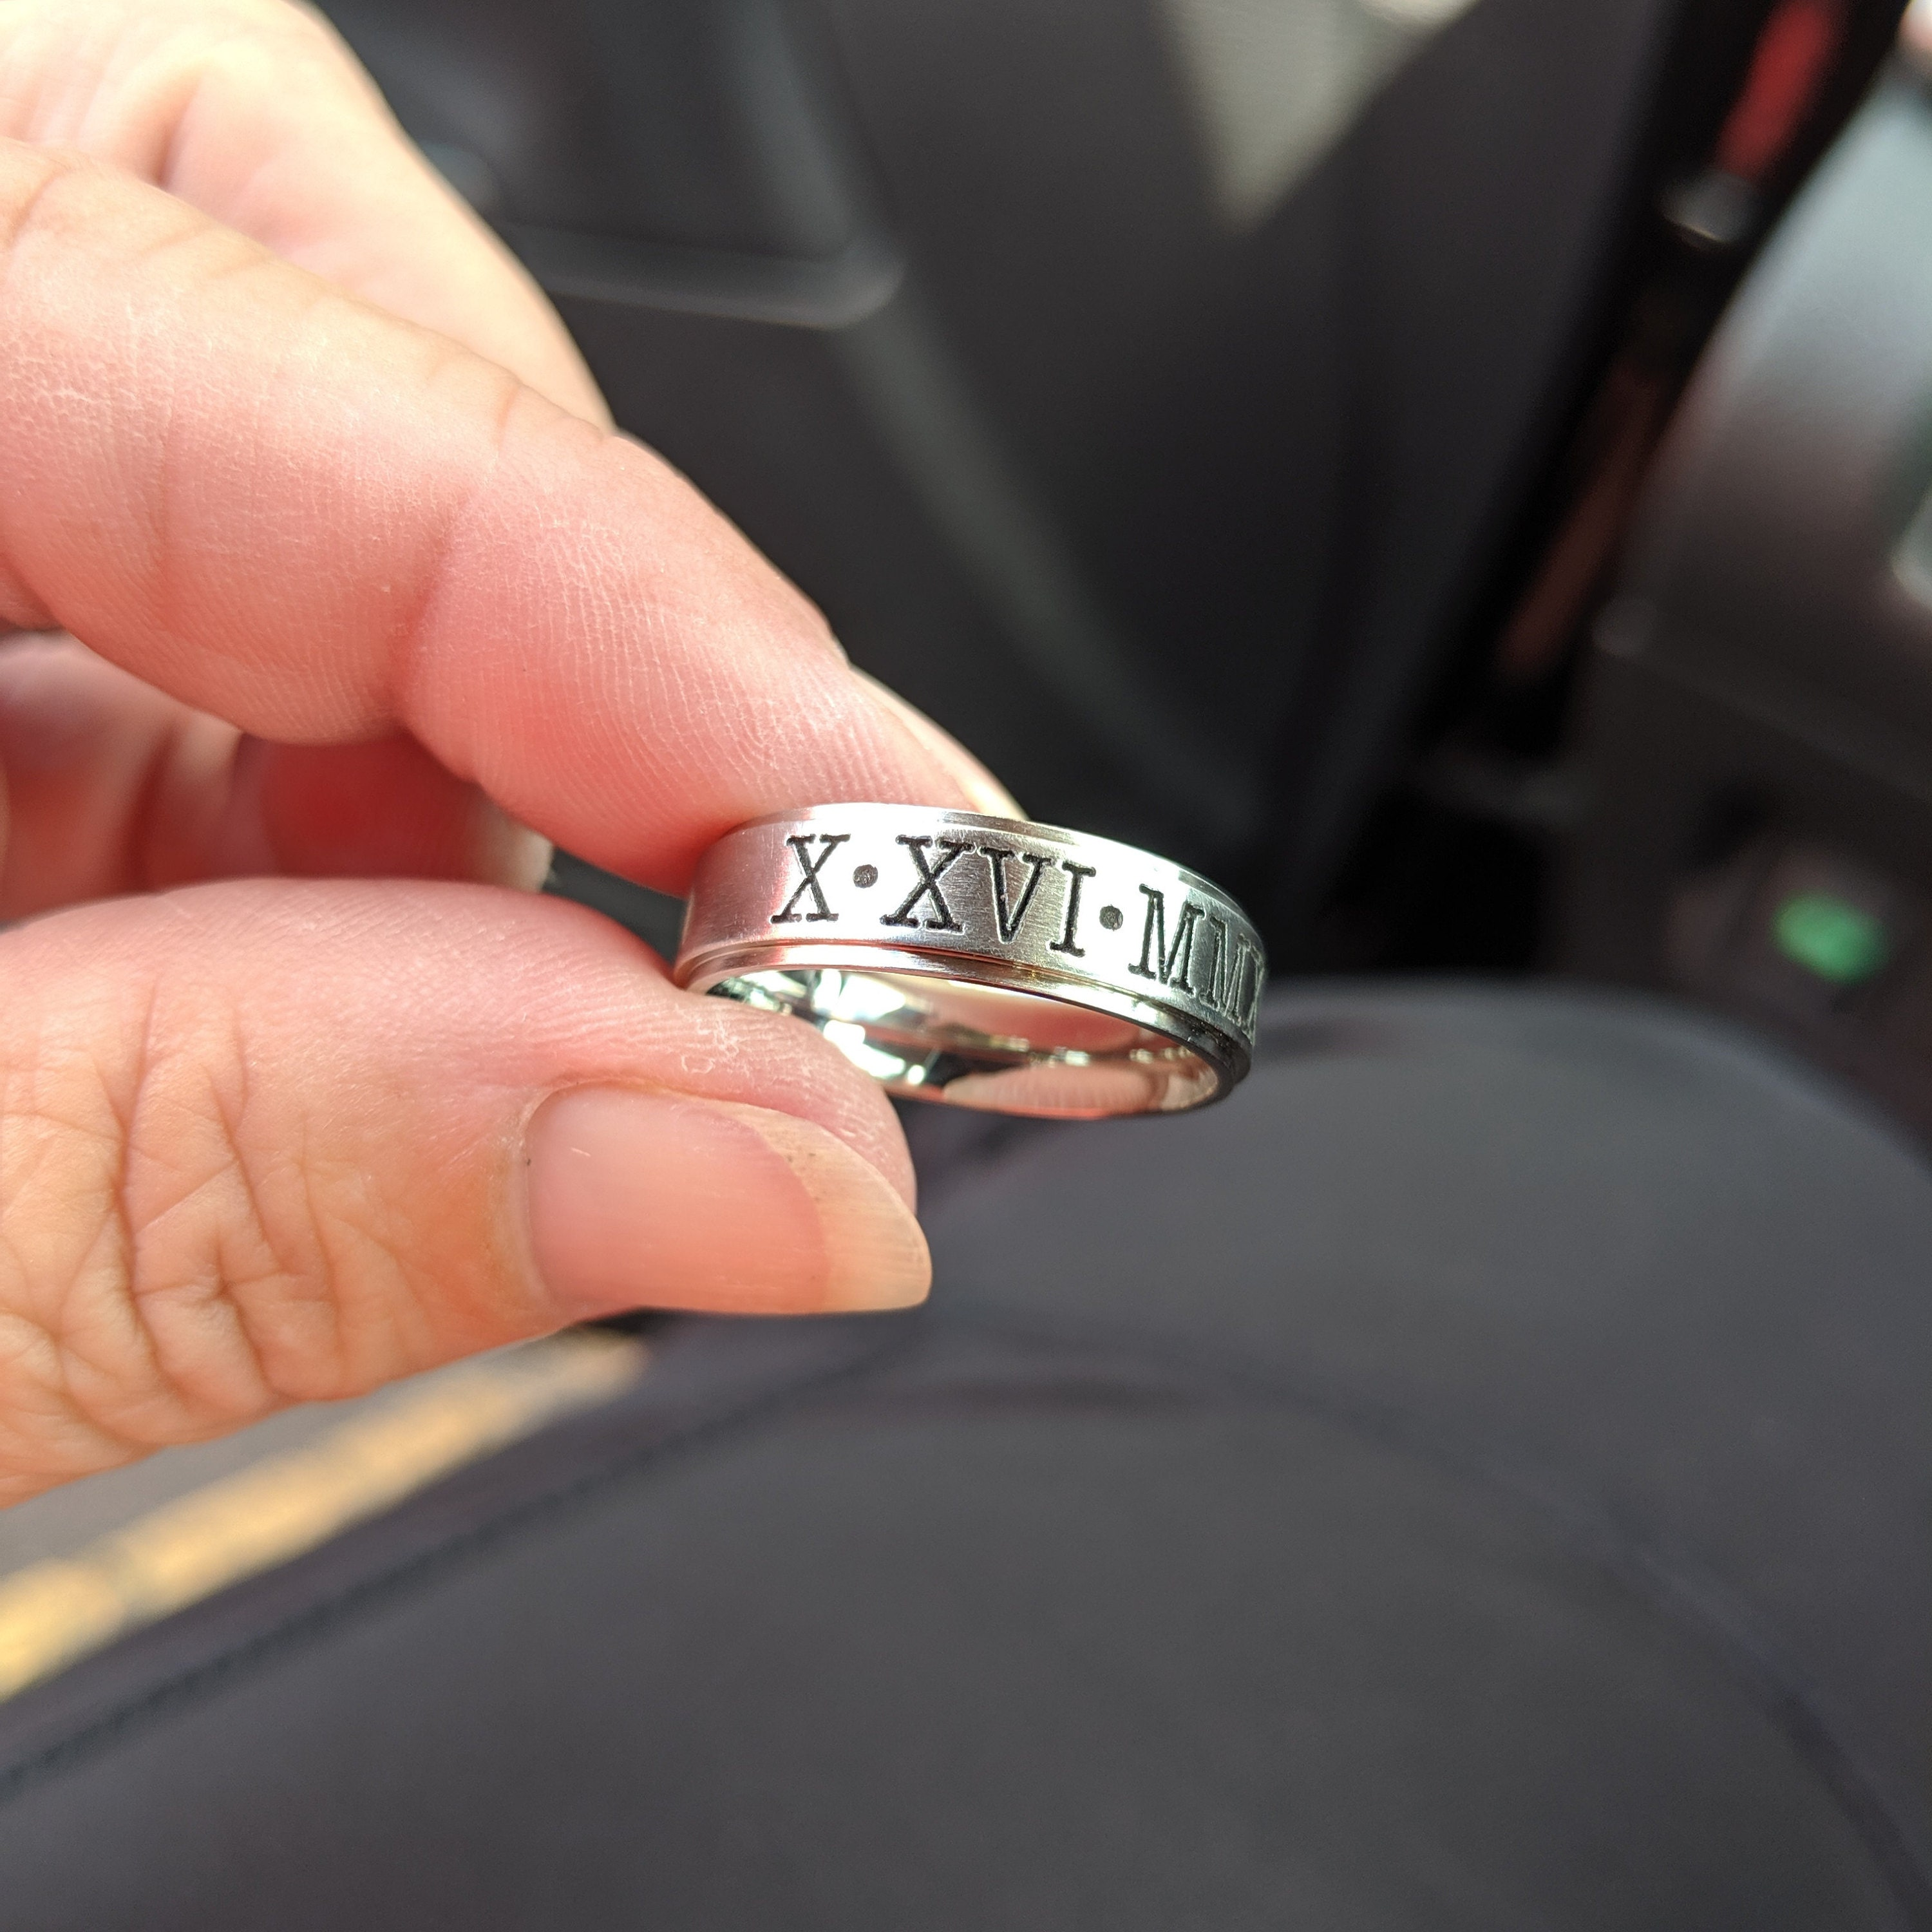 Melissa Abrams added a photo of their purchase